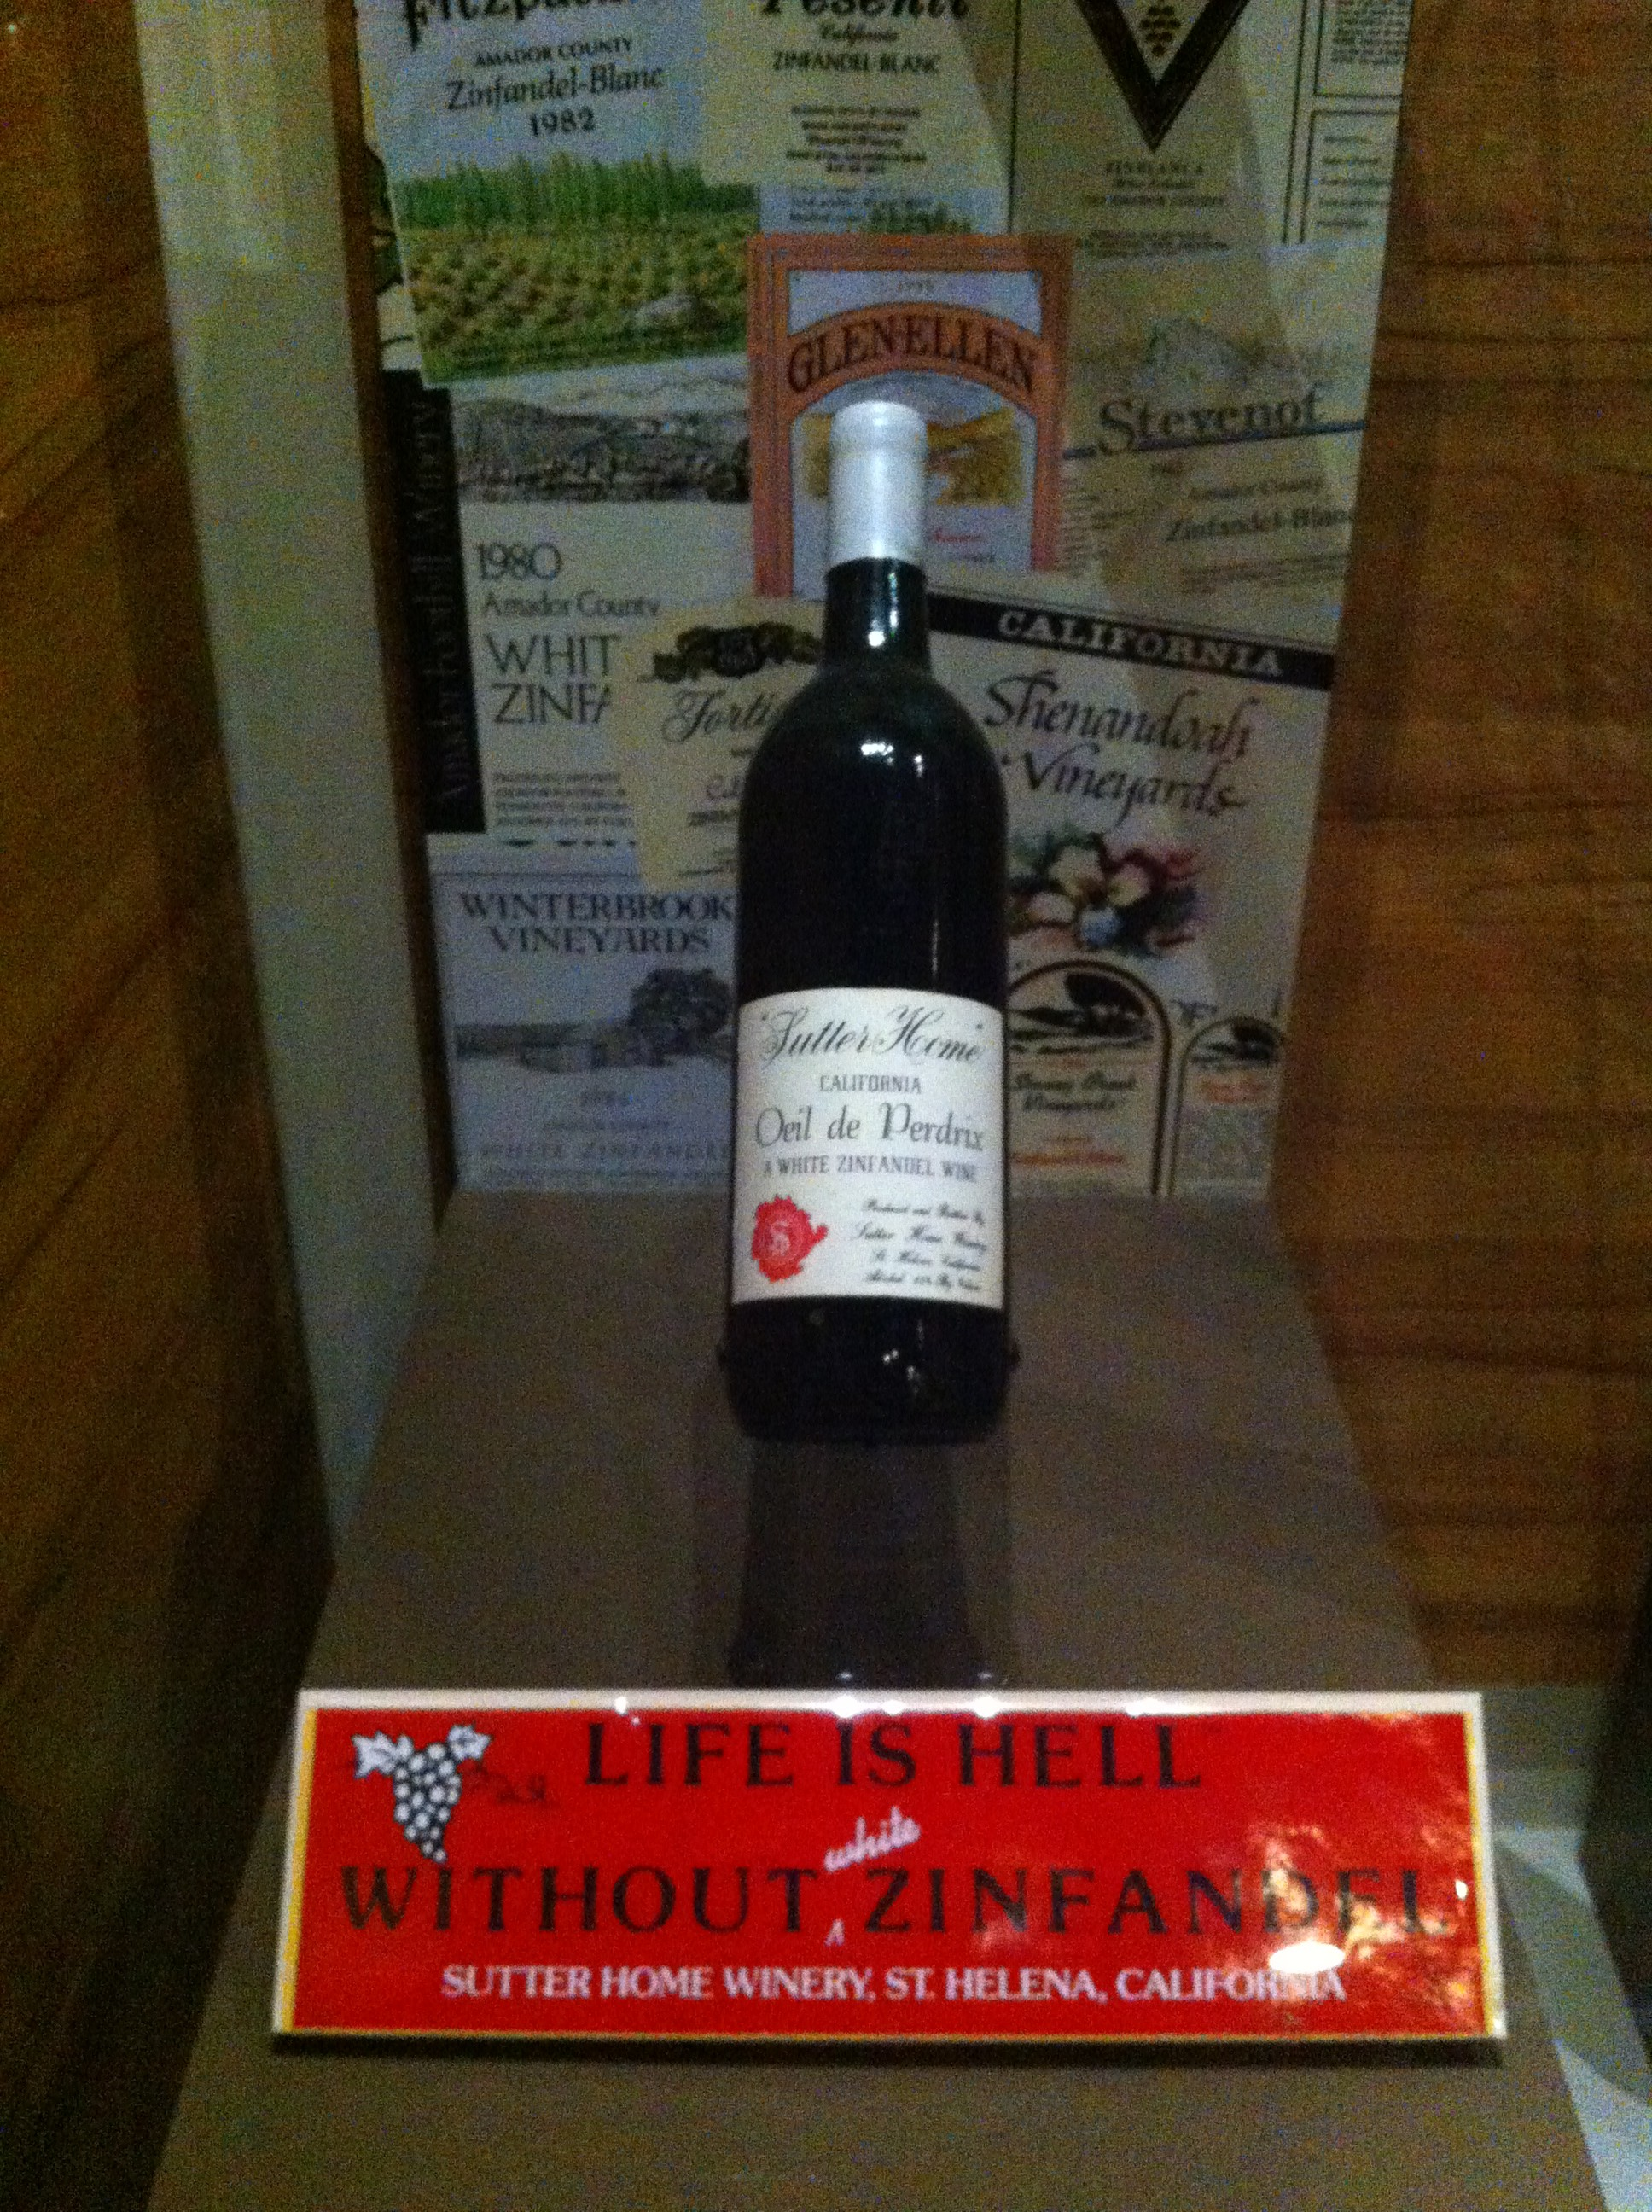 one of the first bottles of White Zinfandel made by the Trincheros of Sutter Home Winery in 1975.